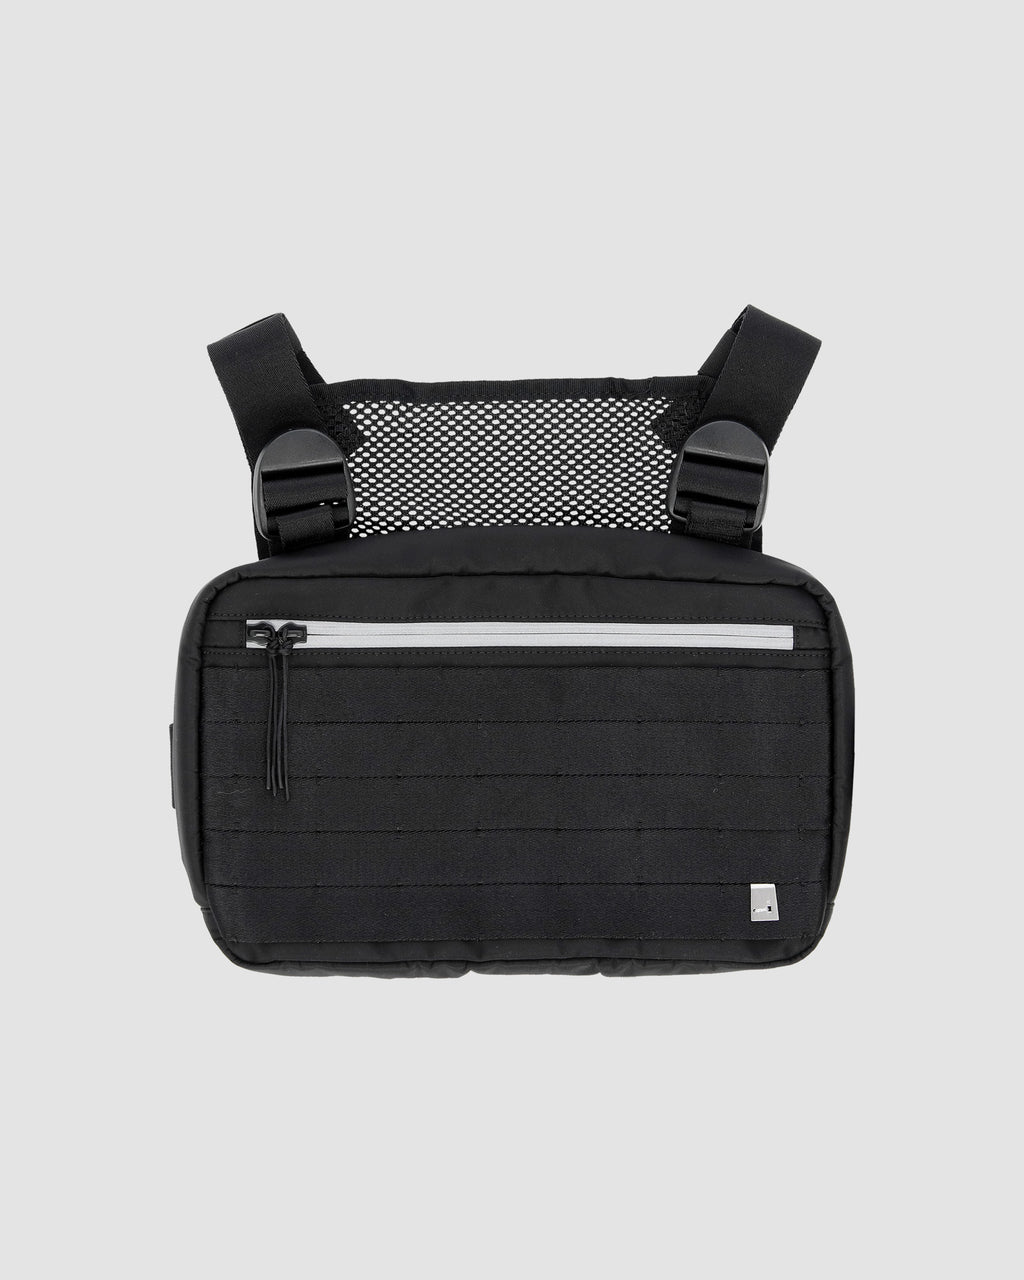 NORDSTROM CHEST RIG